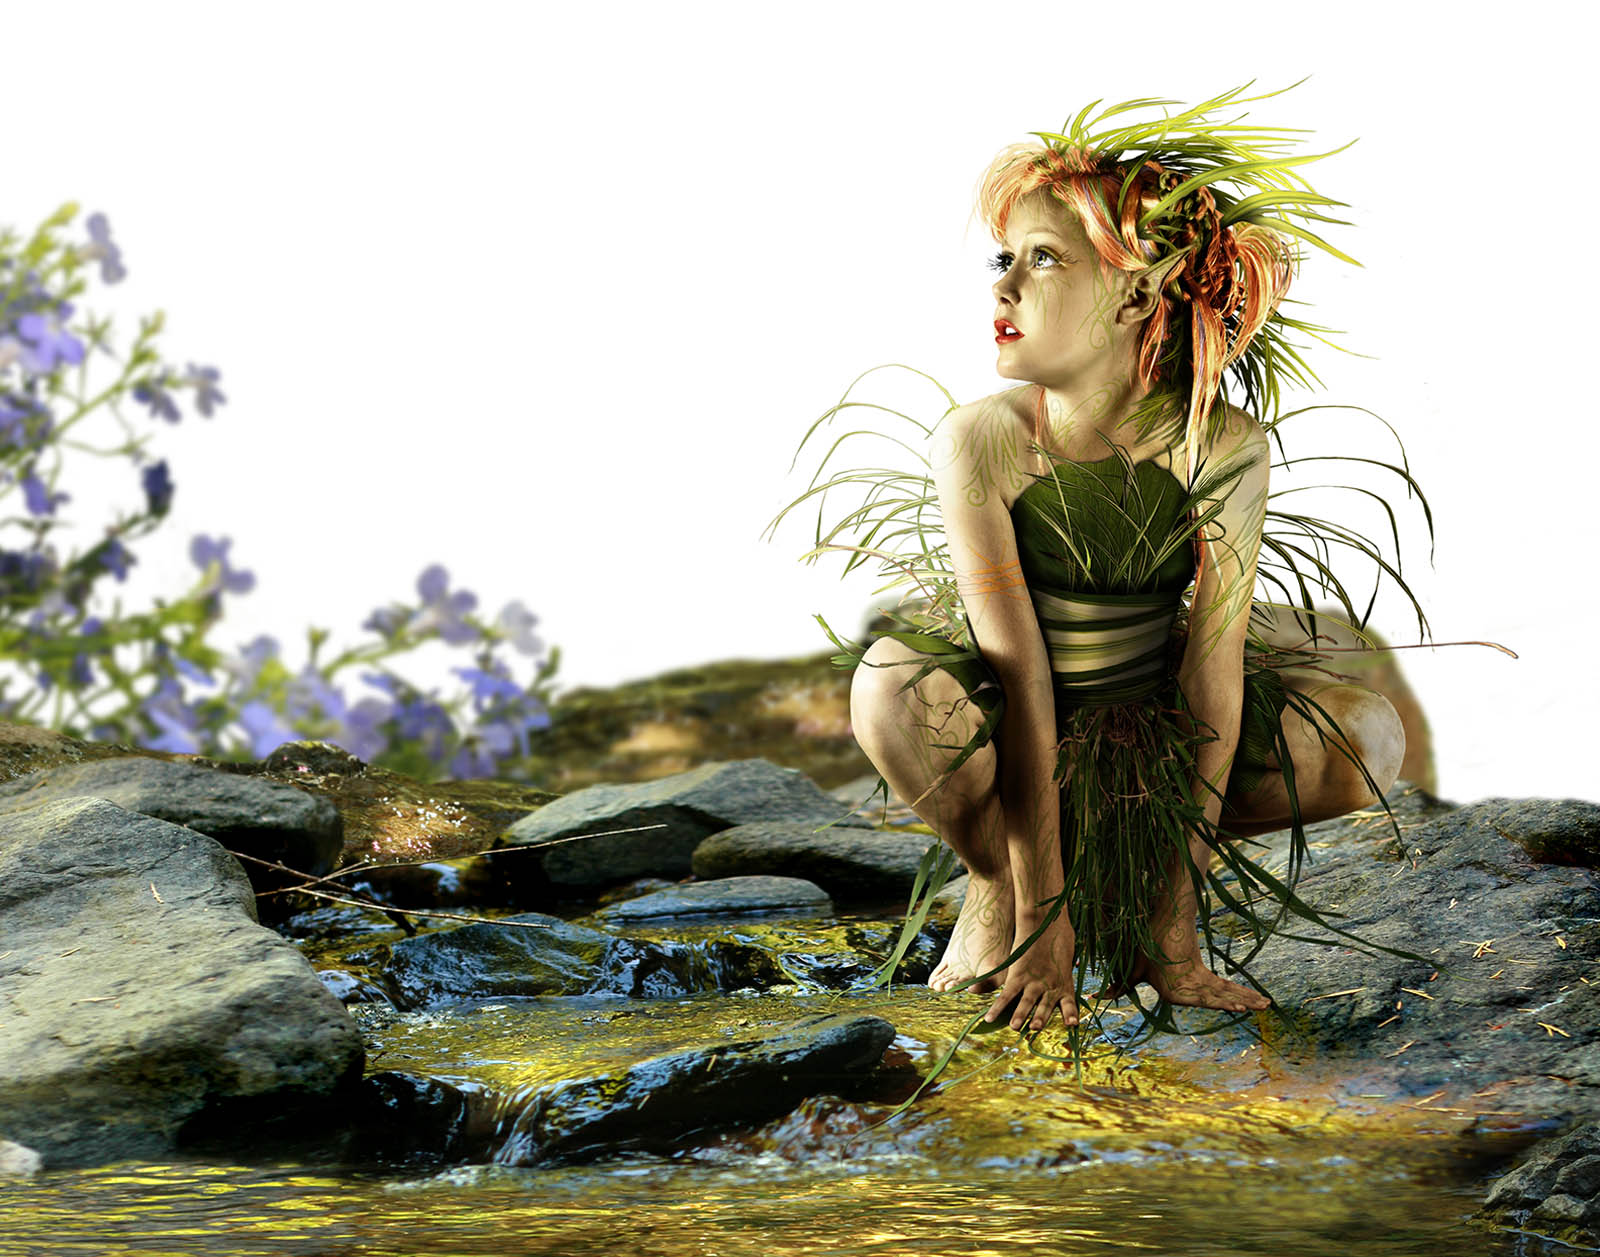 Next begins the background work. The name of this artwork is Summer Whispers.I wanted it to feel like this little garden fairy had found an oasis in the long, hot summers we experience here in northern California where I live. -